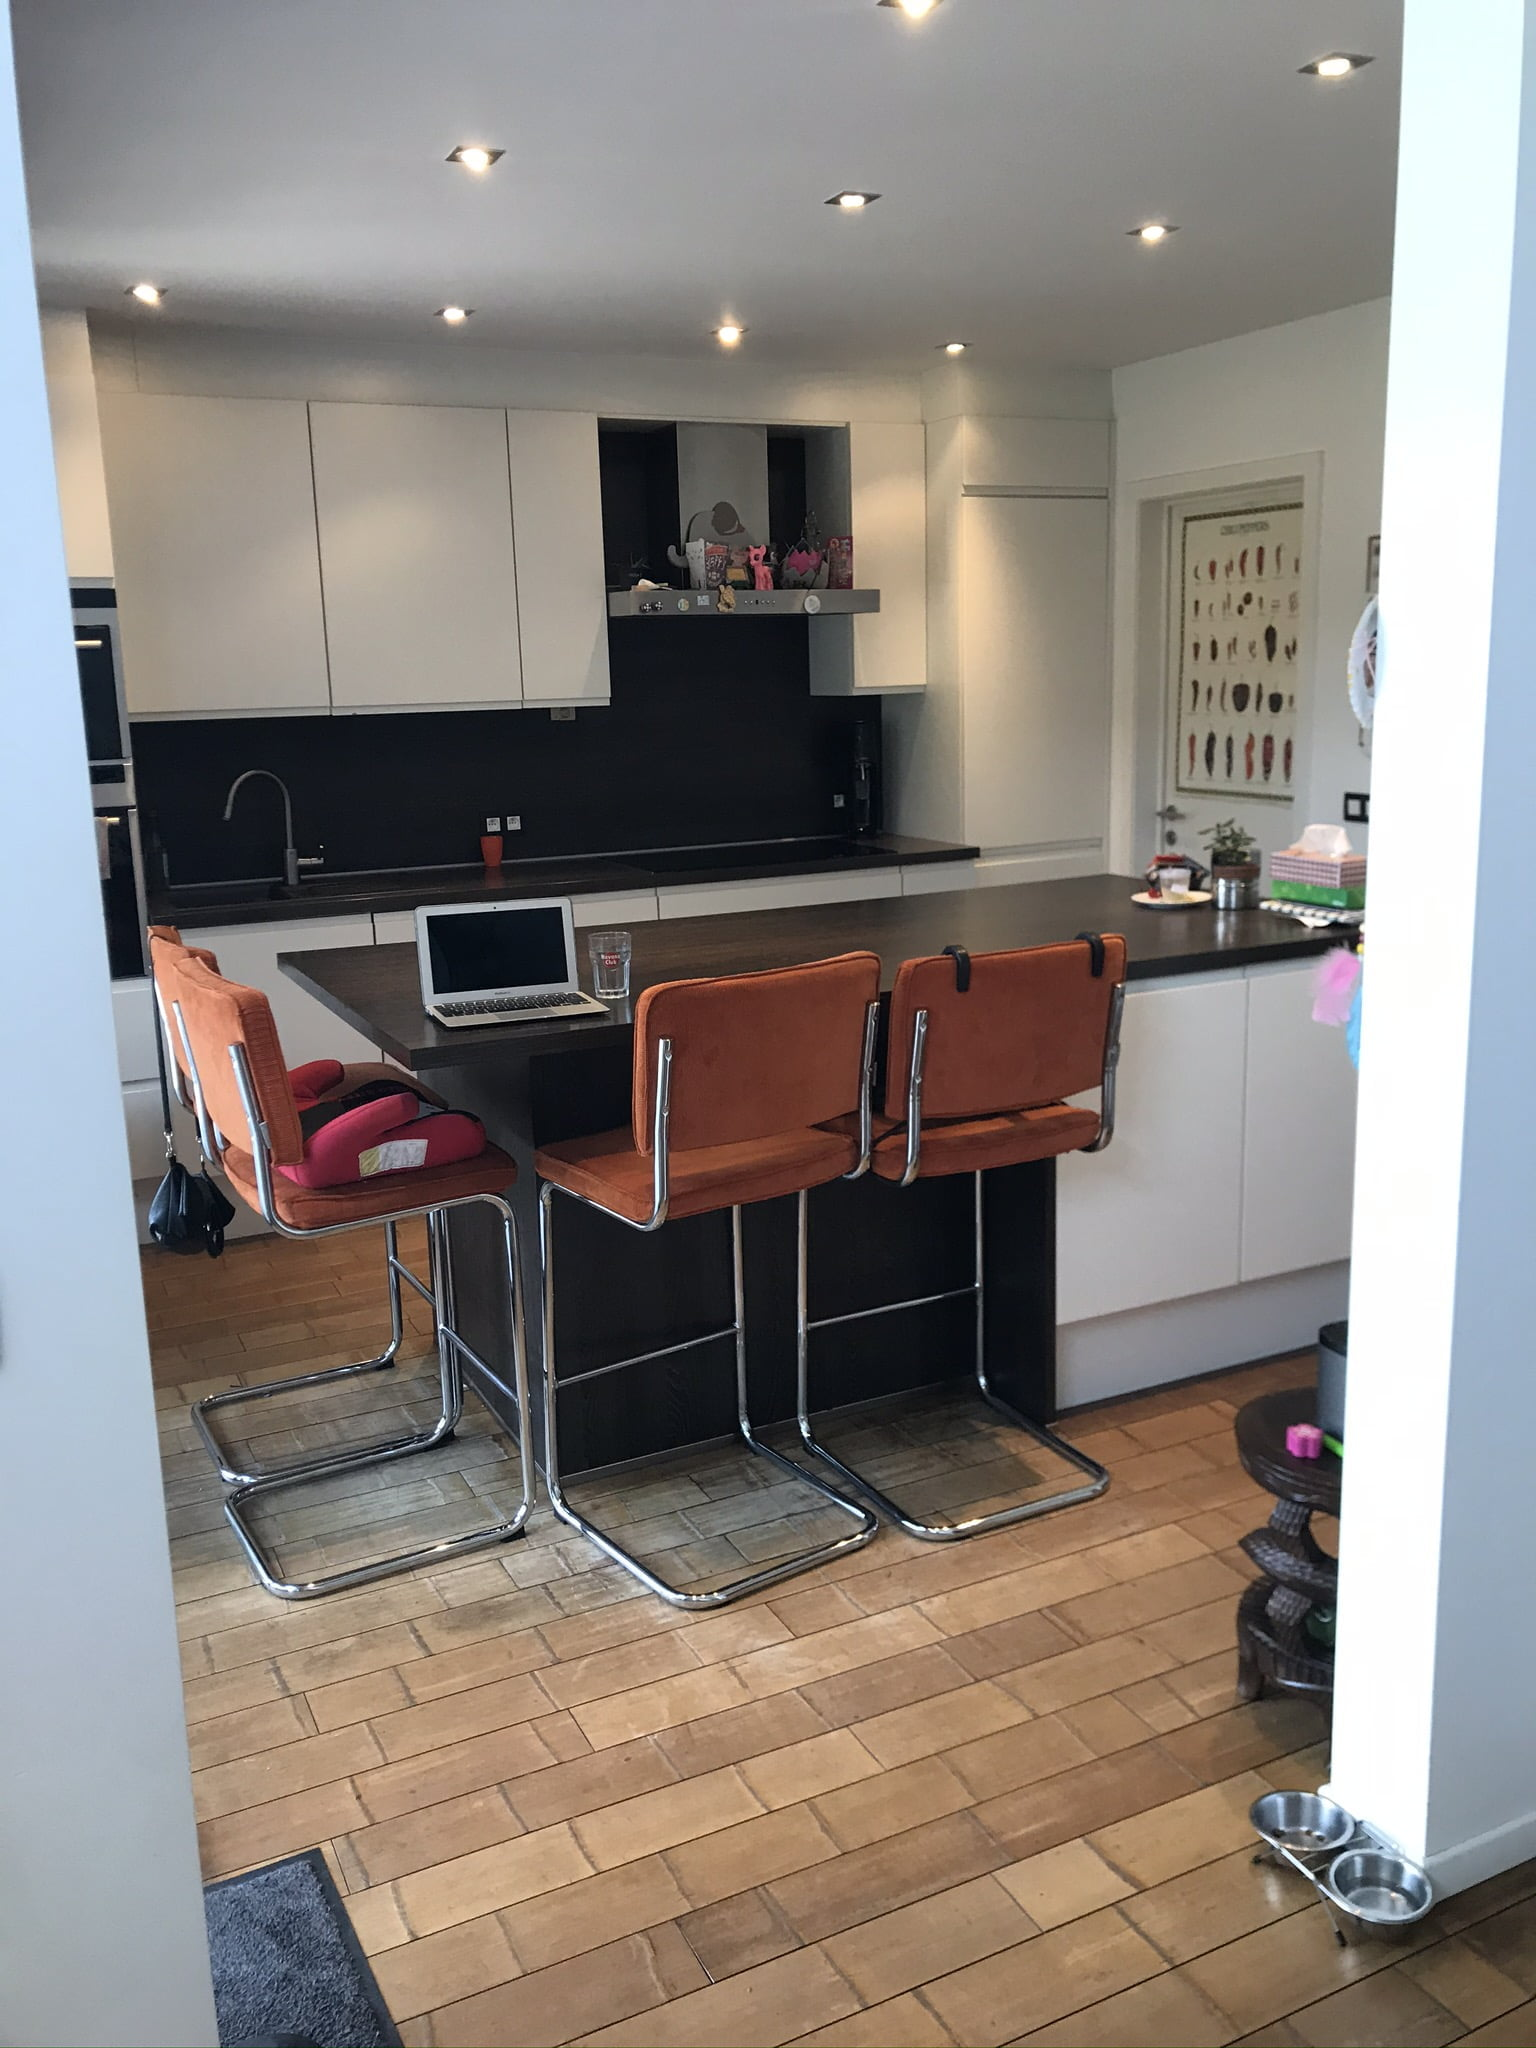 4 bedroom house for expats near Antwerp